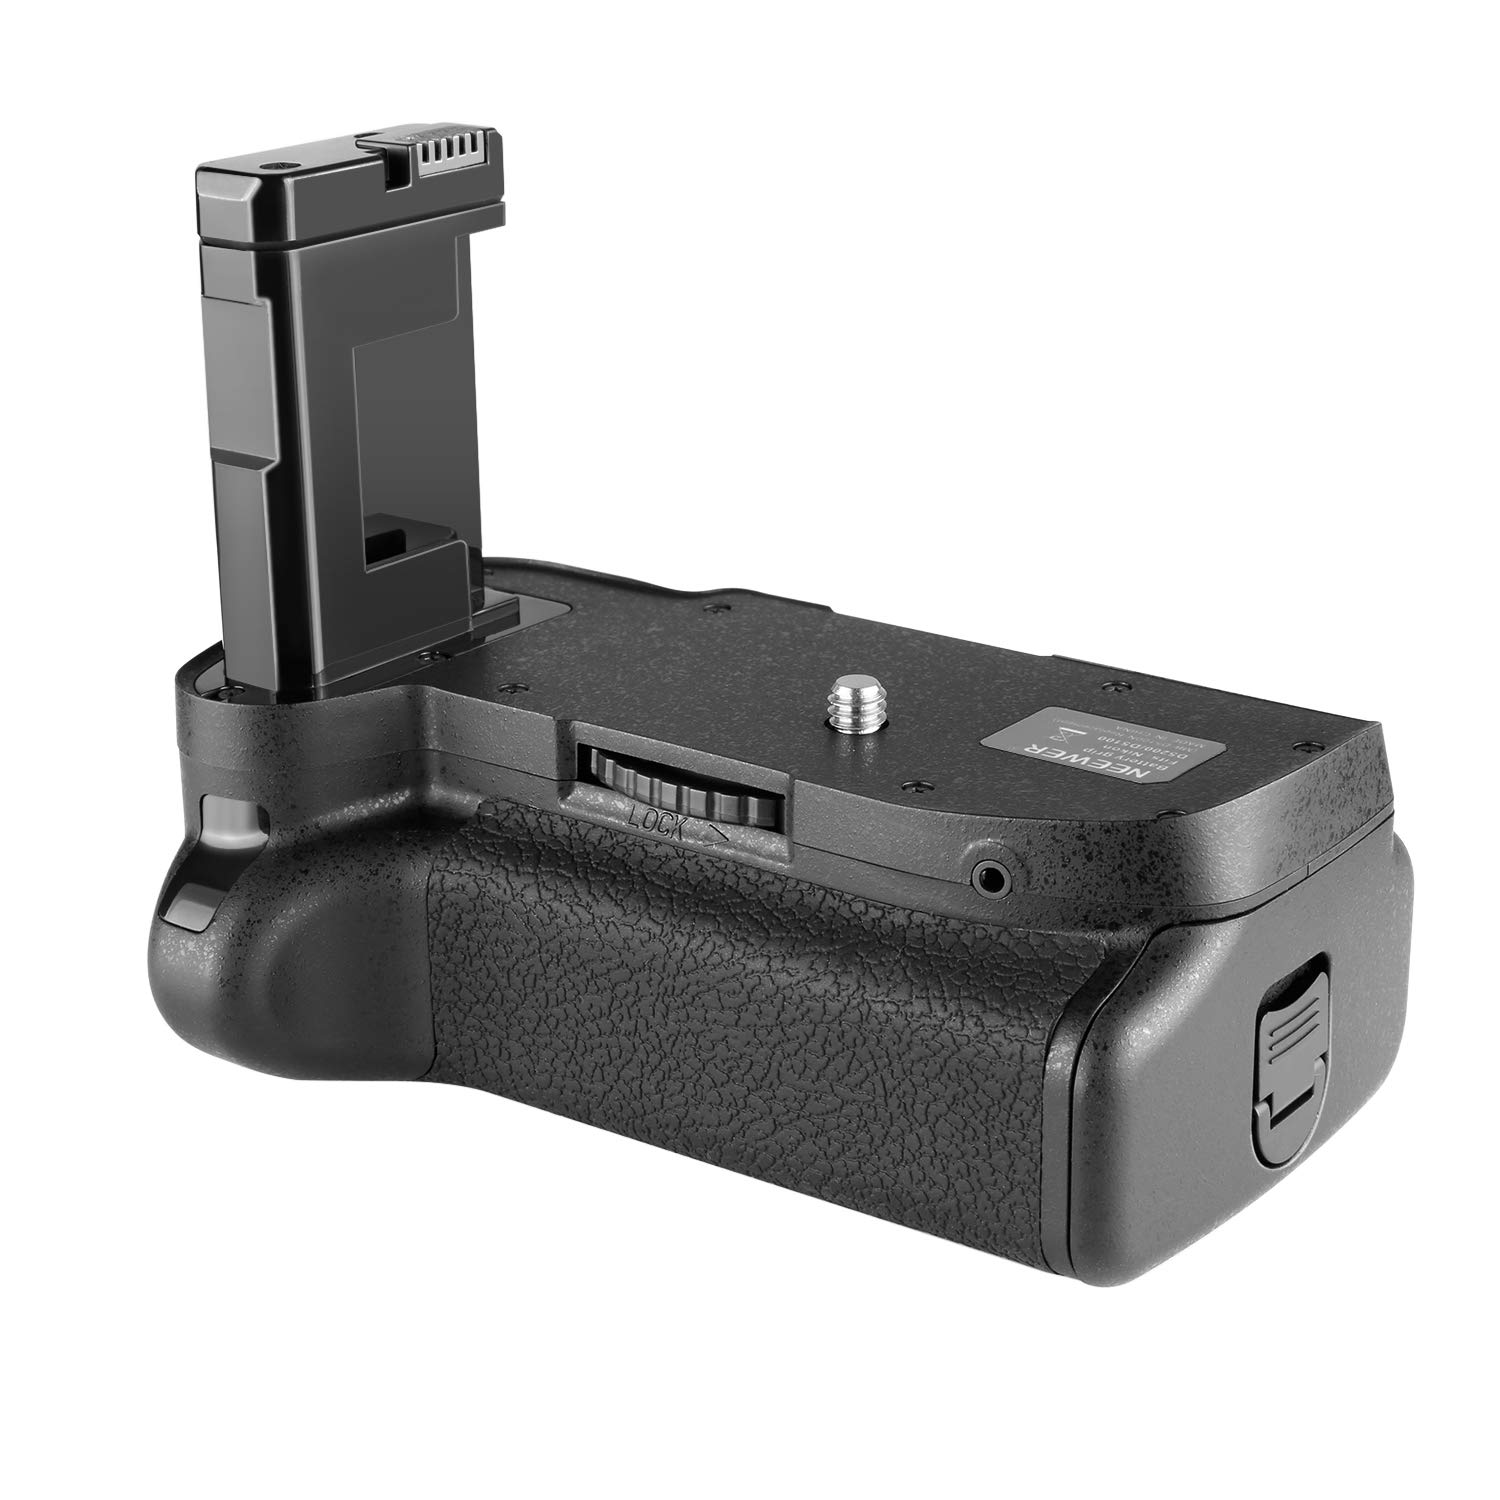 Neewer Pro Battery Grip for Nikon D5100 5200 DSLR Camera Compatible with EN-EL14 Batteries by Neewer